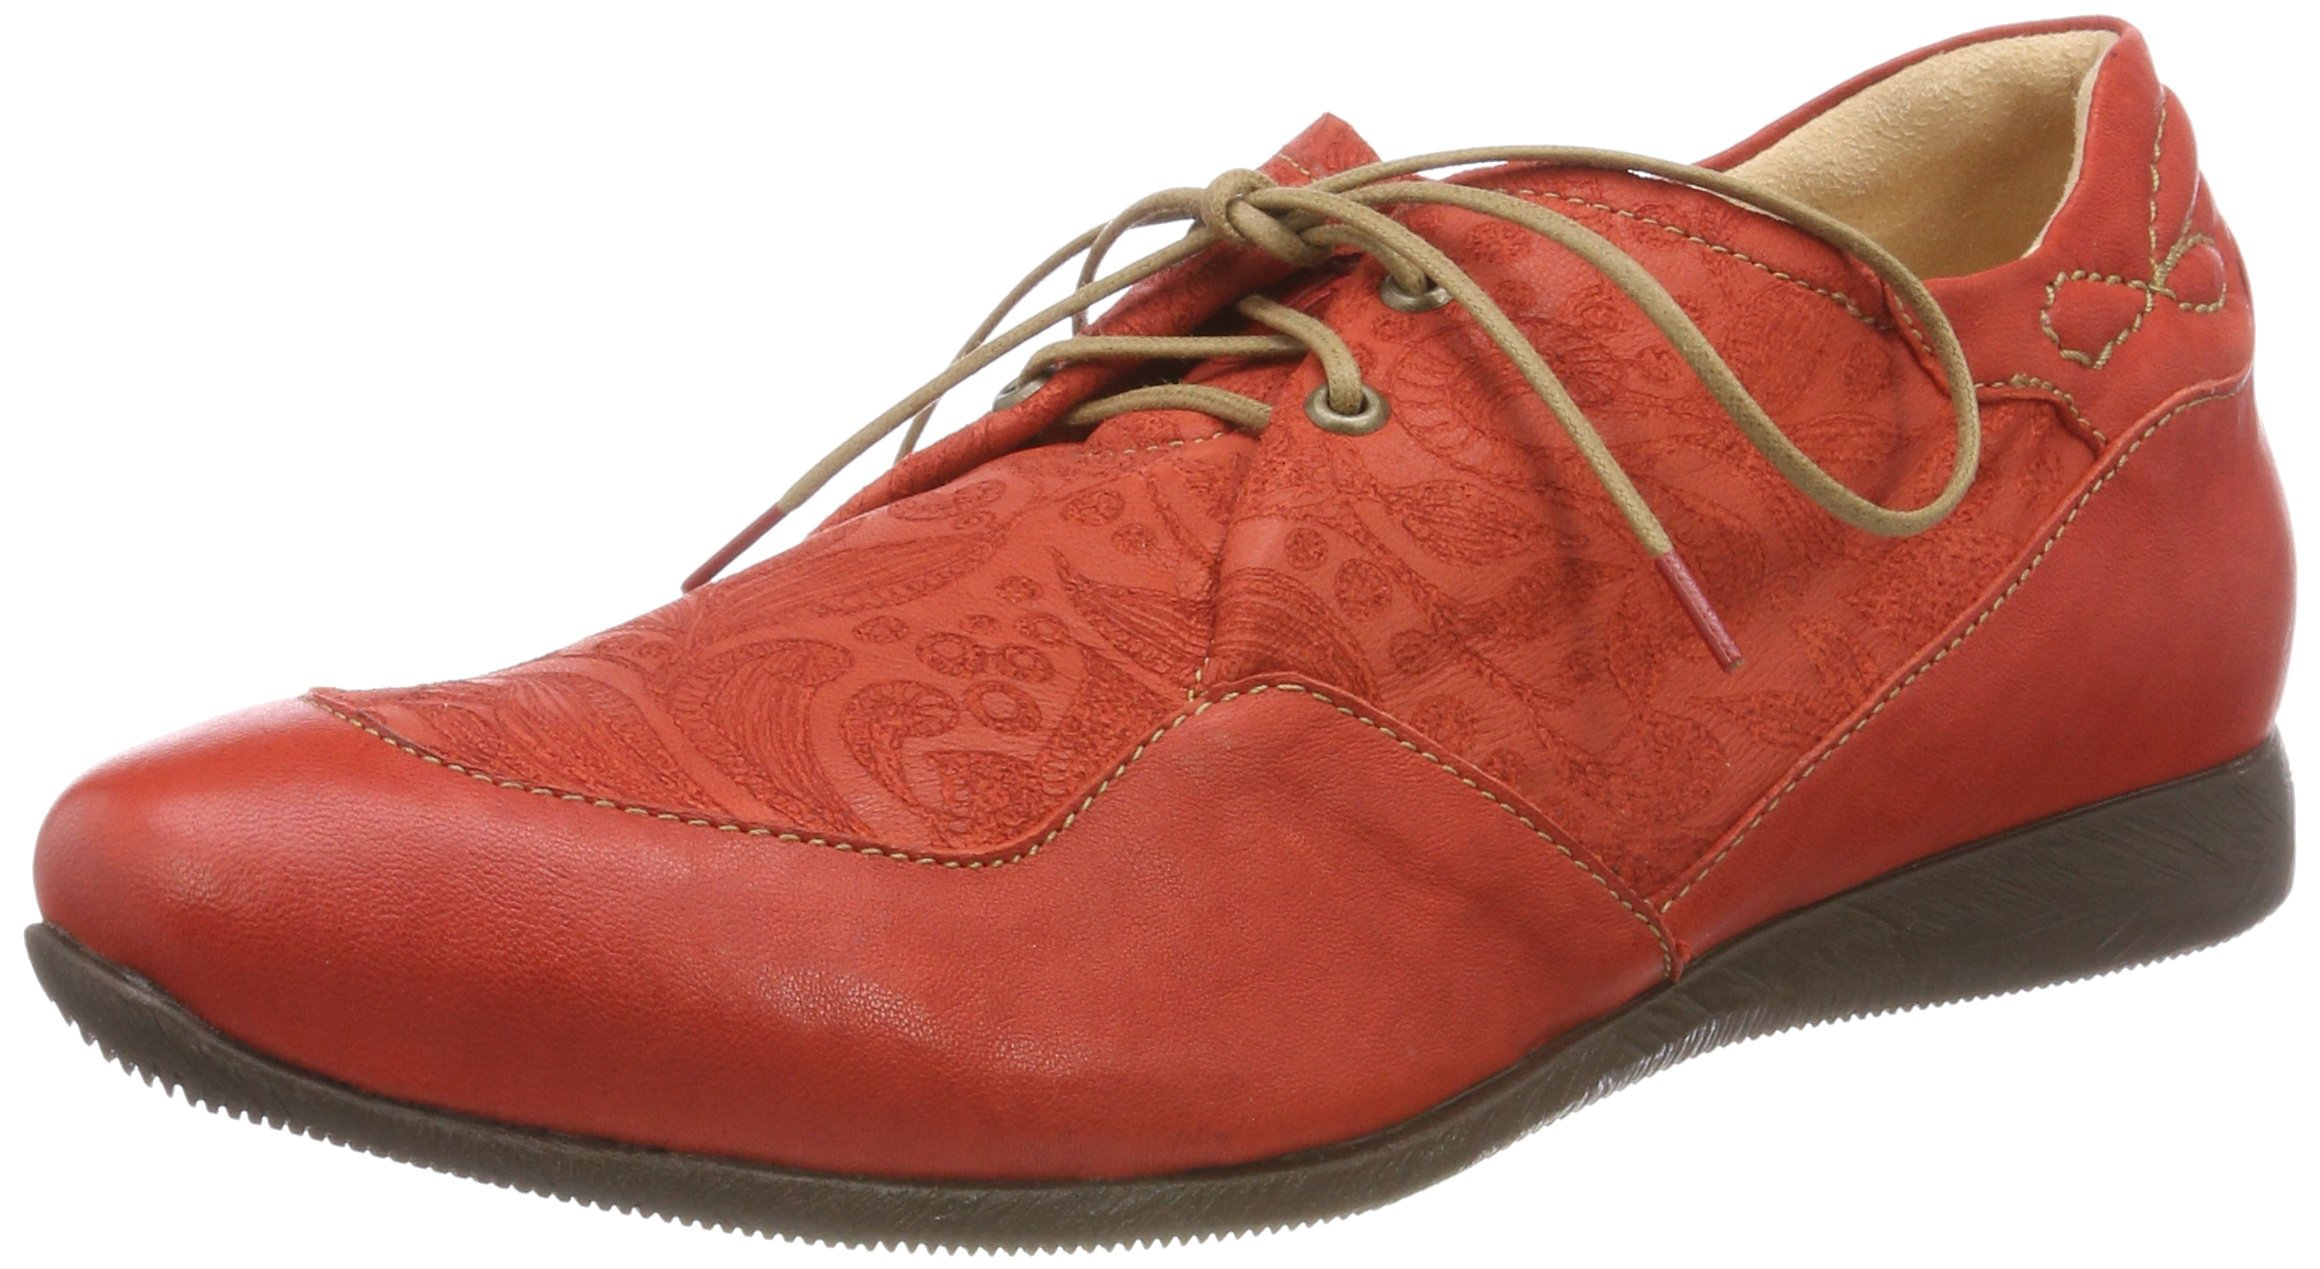 282094Brogues kombi Eu 7640 ThinkRaning FemmeRougechilli vmN8wn0